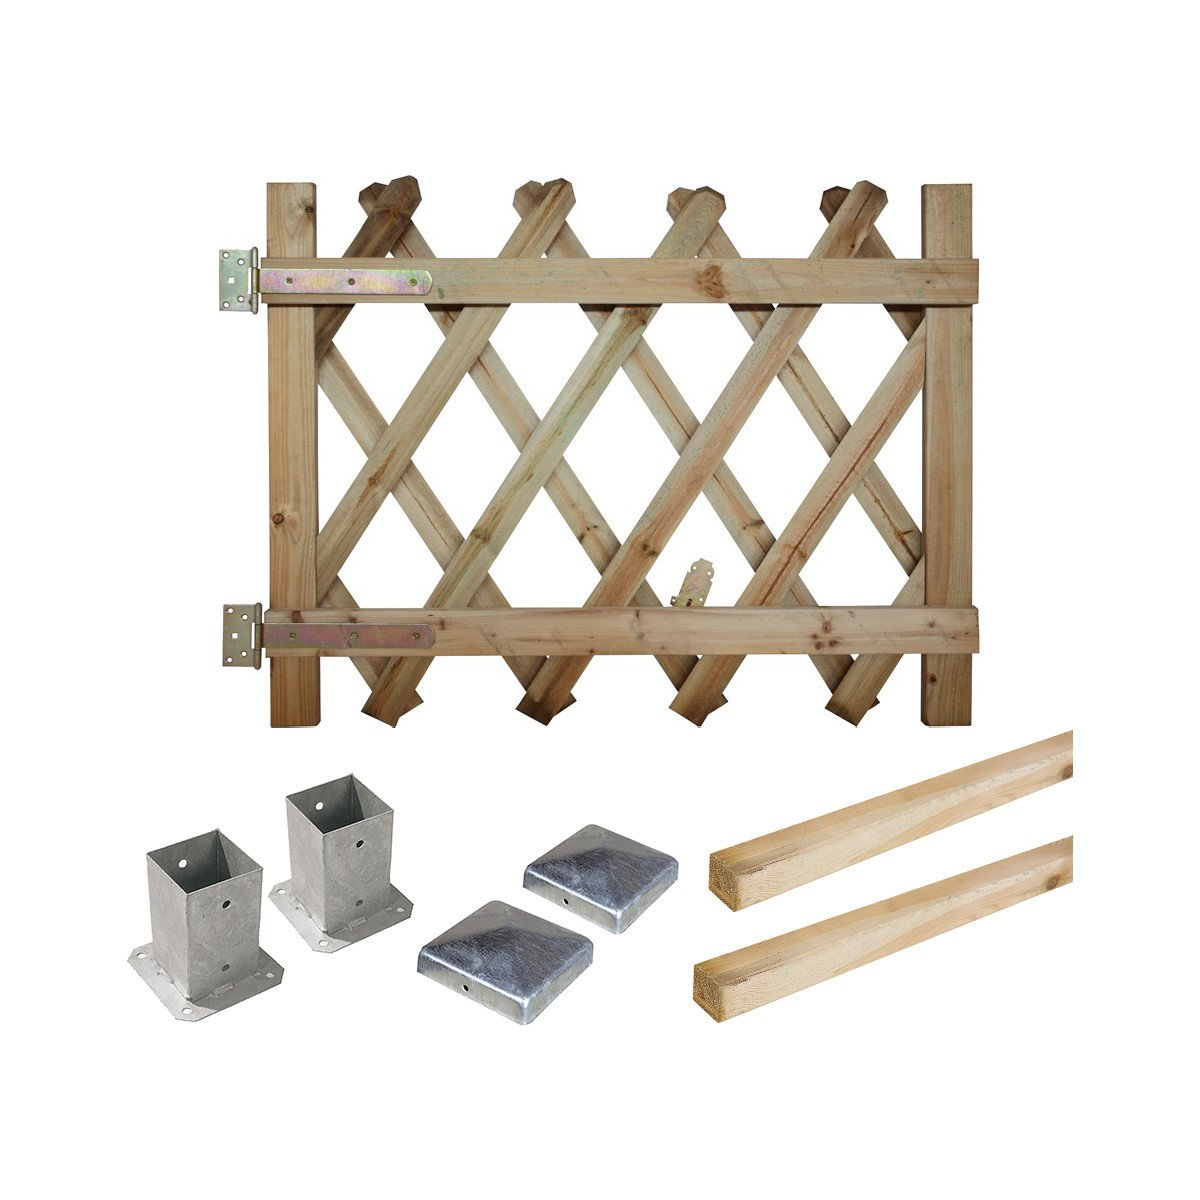 Kit portillon en bois Prunus H 100 cm à fixer